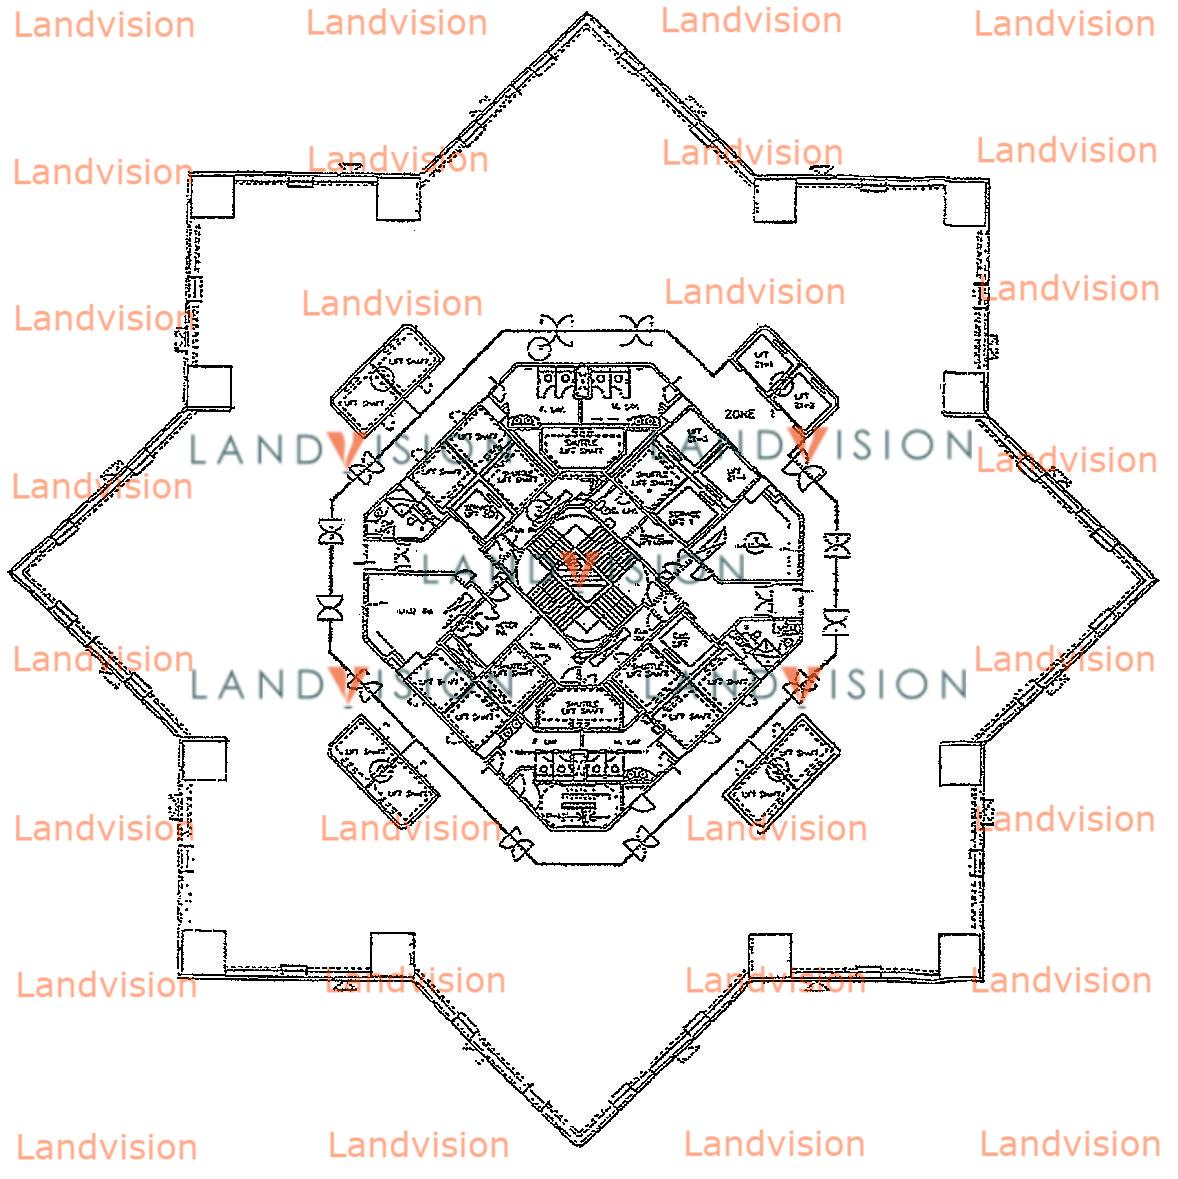 https://www.landvision.com.hk/wp-content/uploads/website/resize/floorplans/000600.JPG